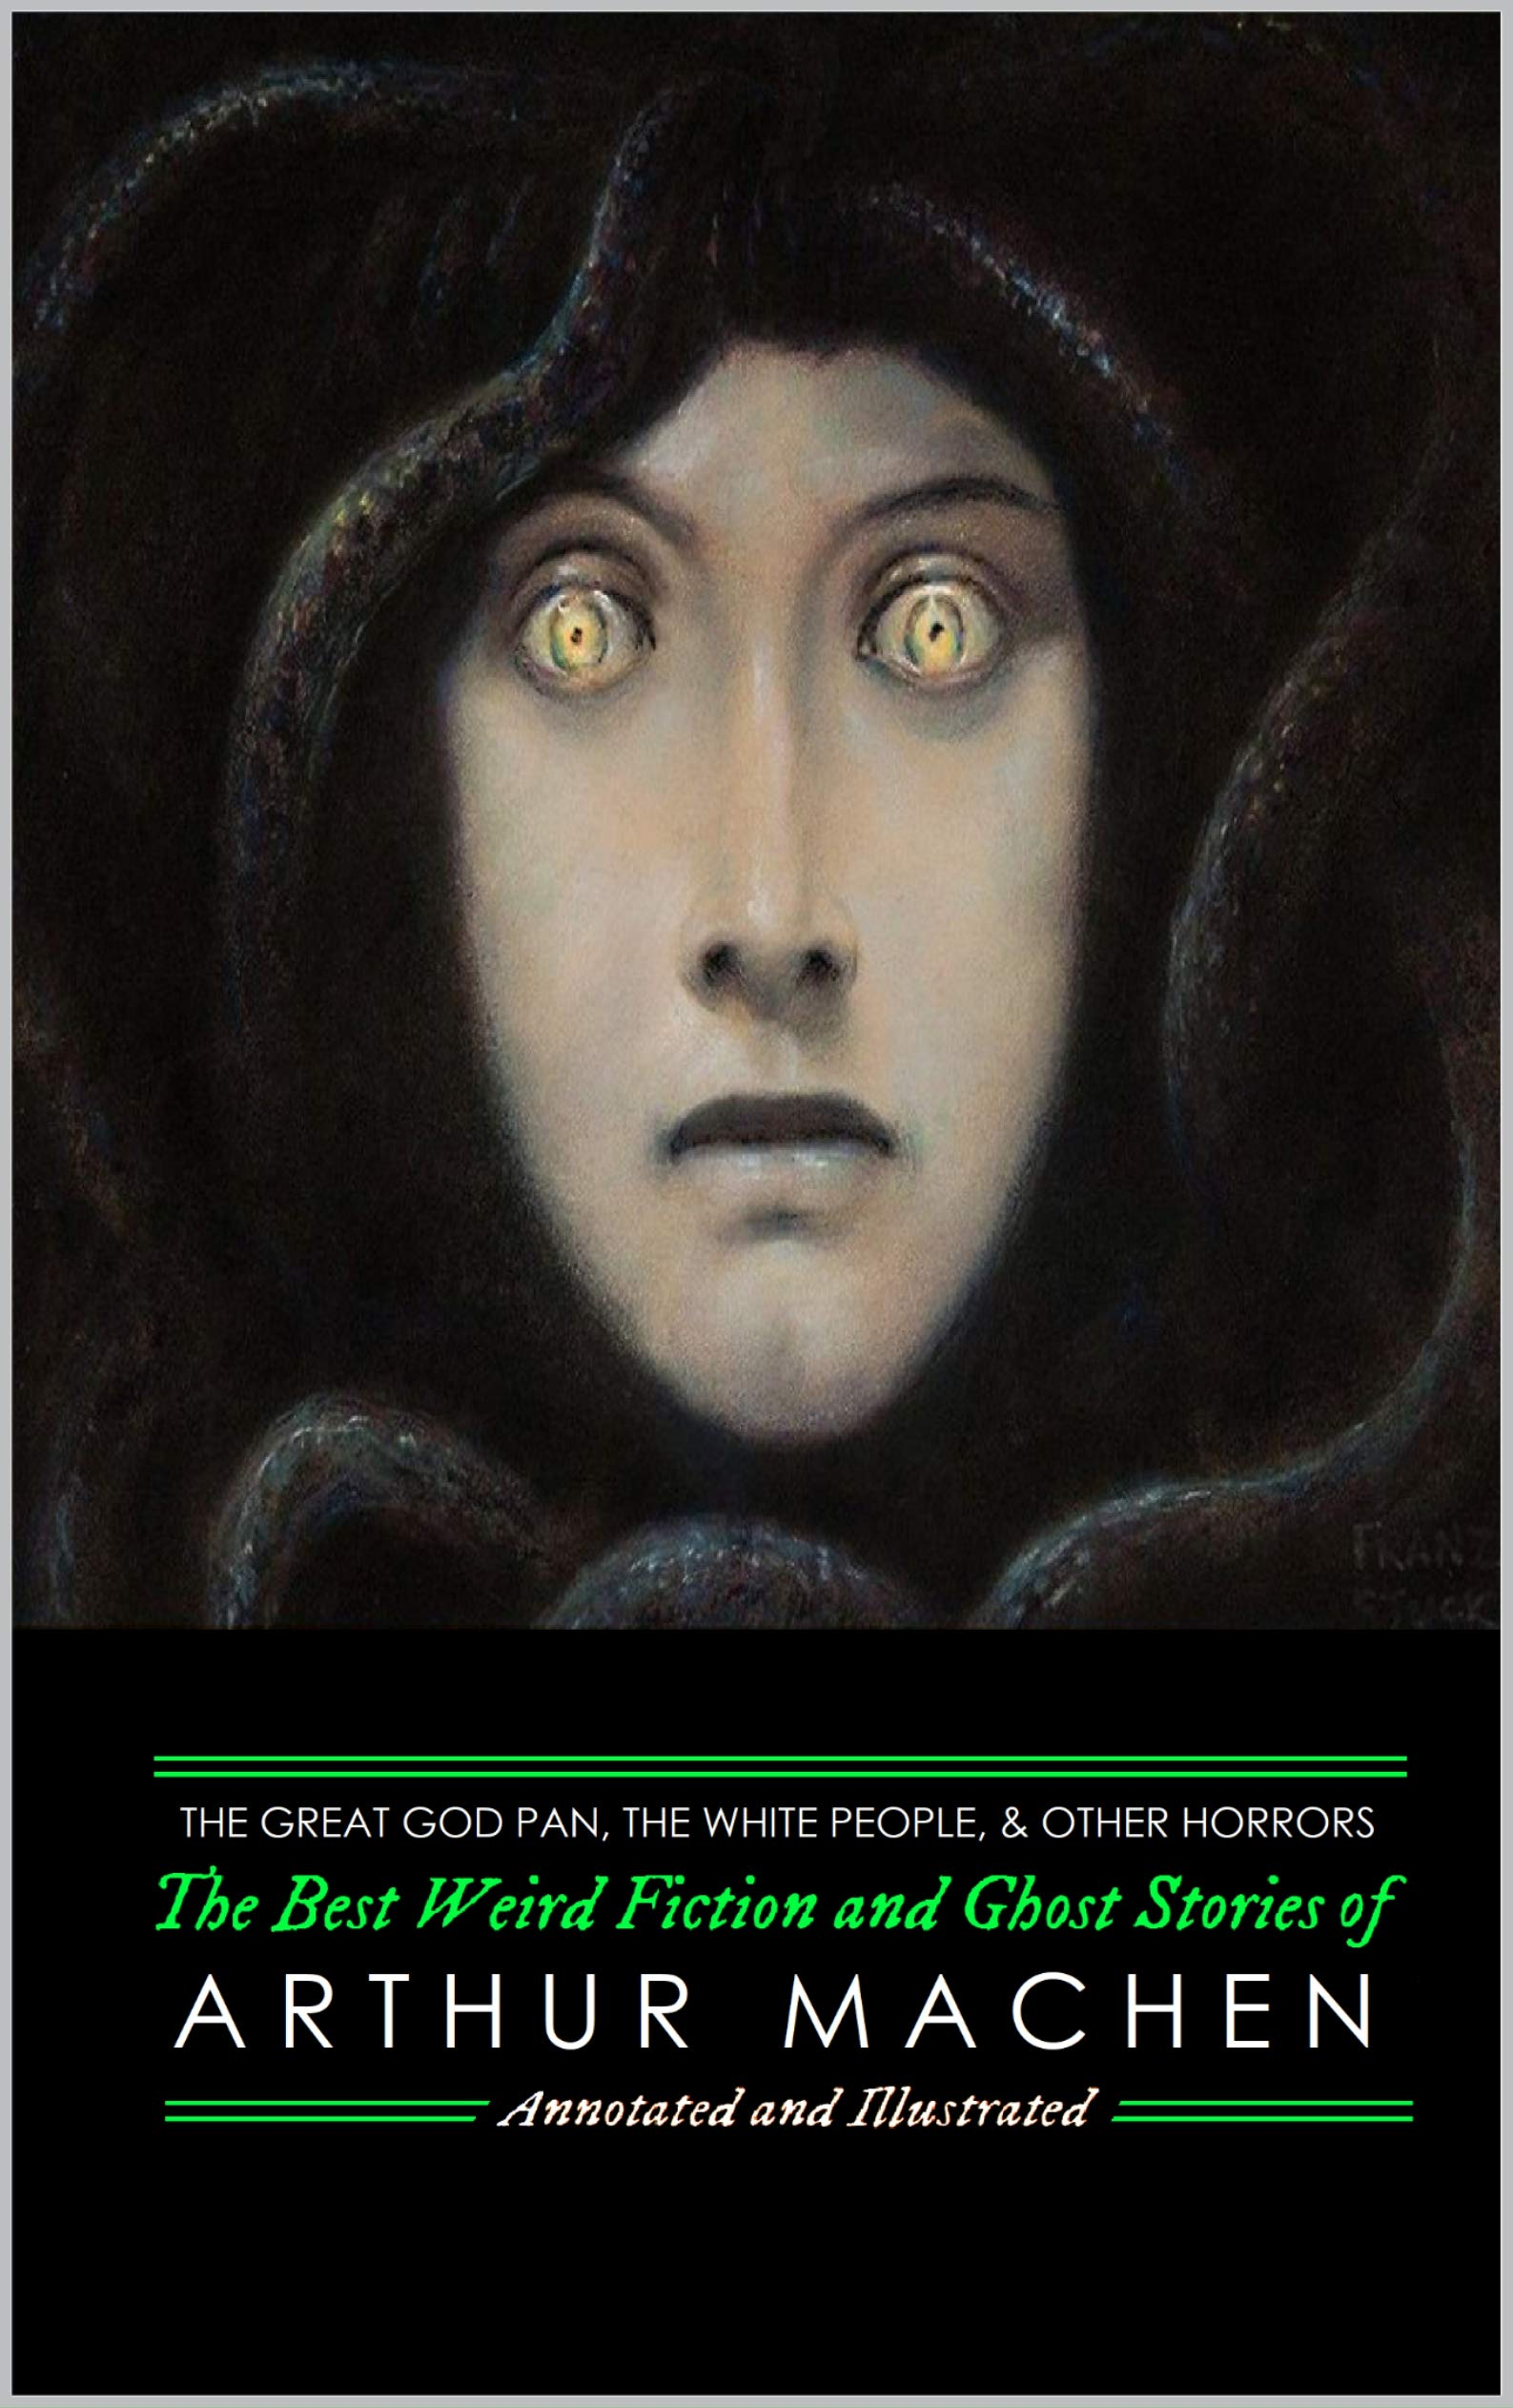 The Great God Pan, The White People, and Other Horrors: The Best Weird Fiction and Ghost Stories of Arthur Machen